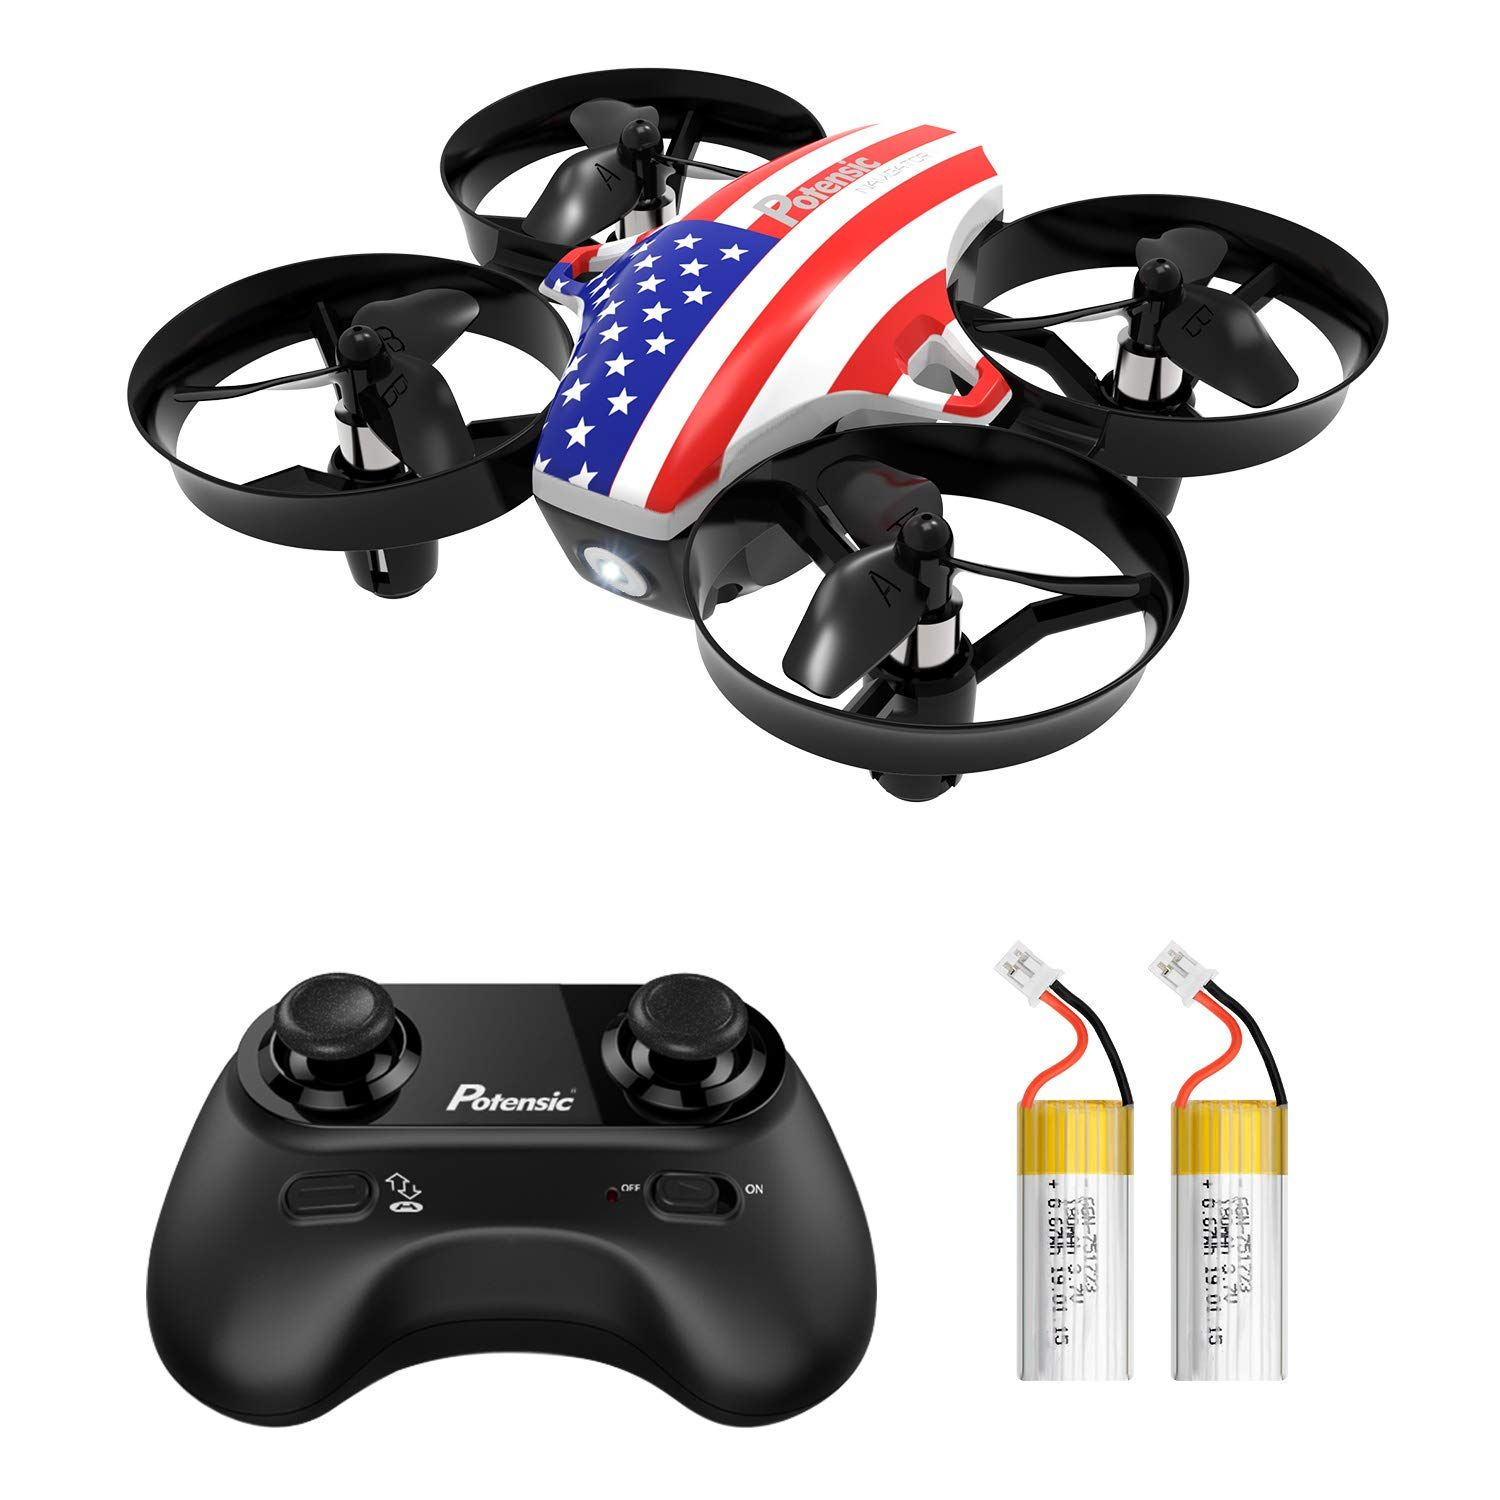 Potensic Upgraded A20 Mini Drone Easy to Fly Even to Kids